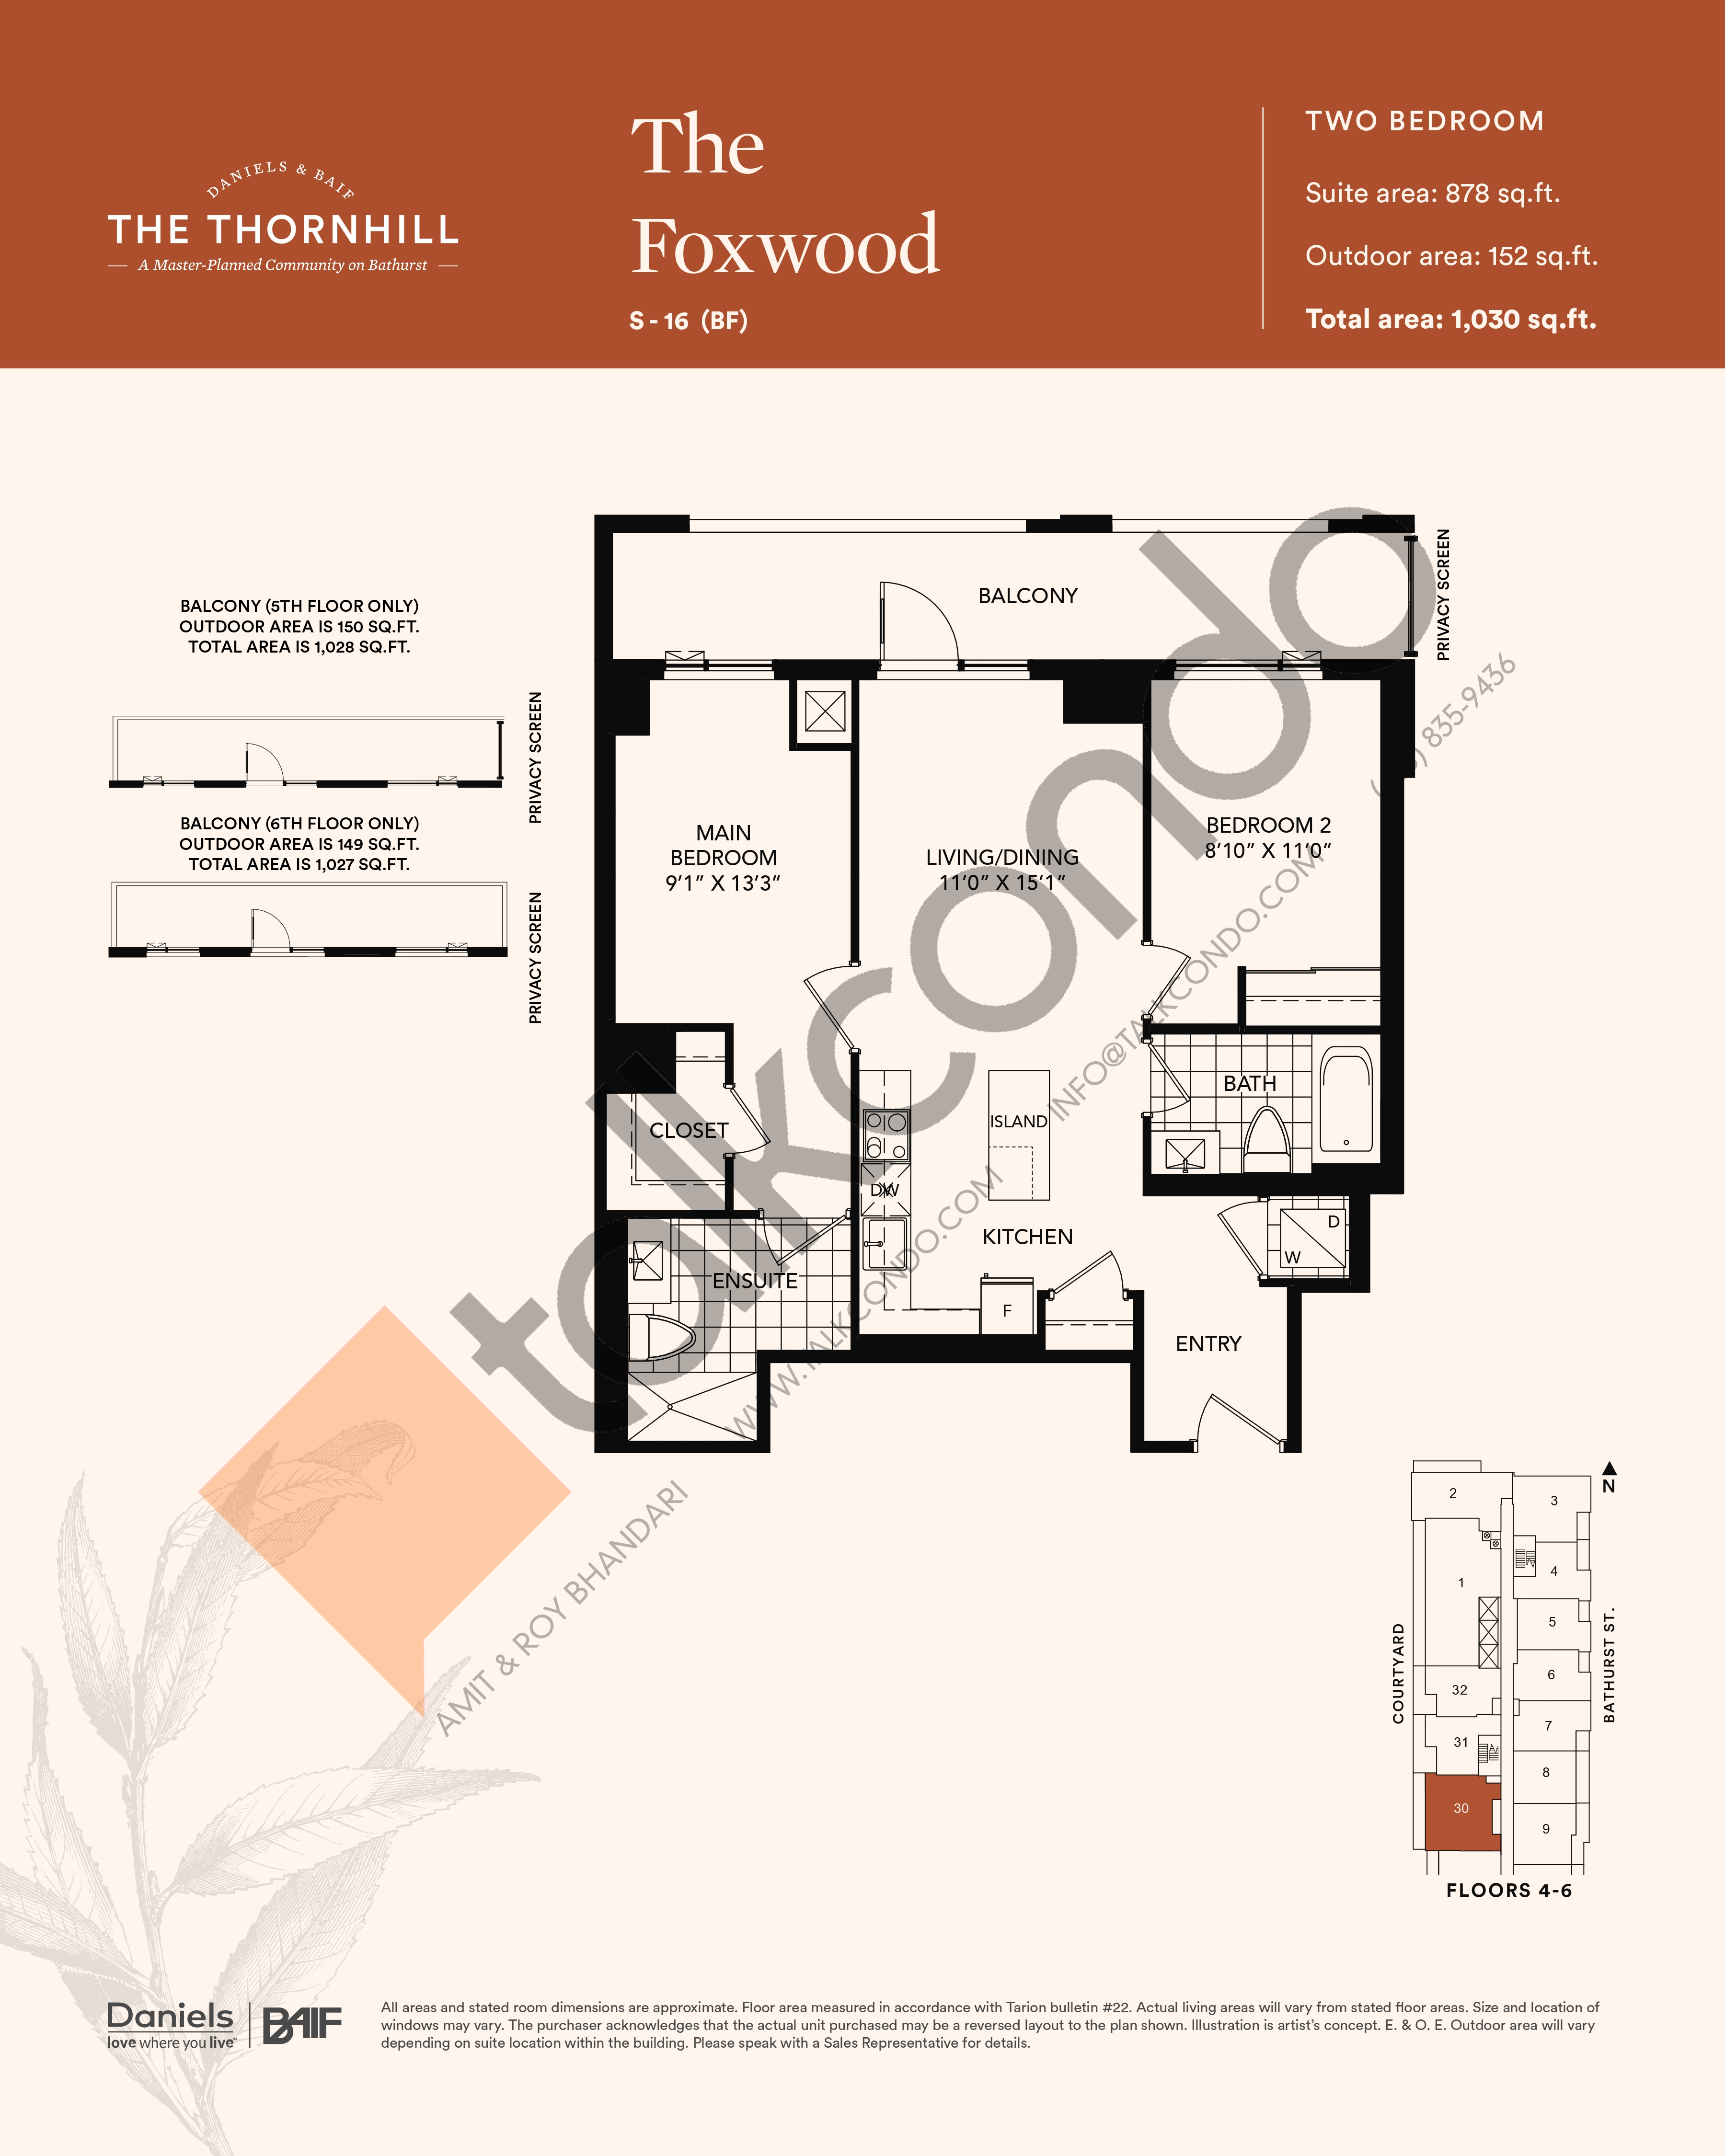 The Foxwood Floor Plan at The Thornhill Condos - 878 sq.ft